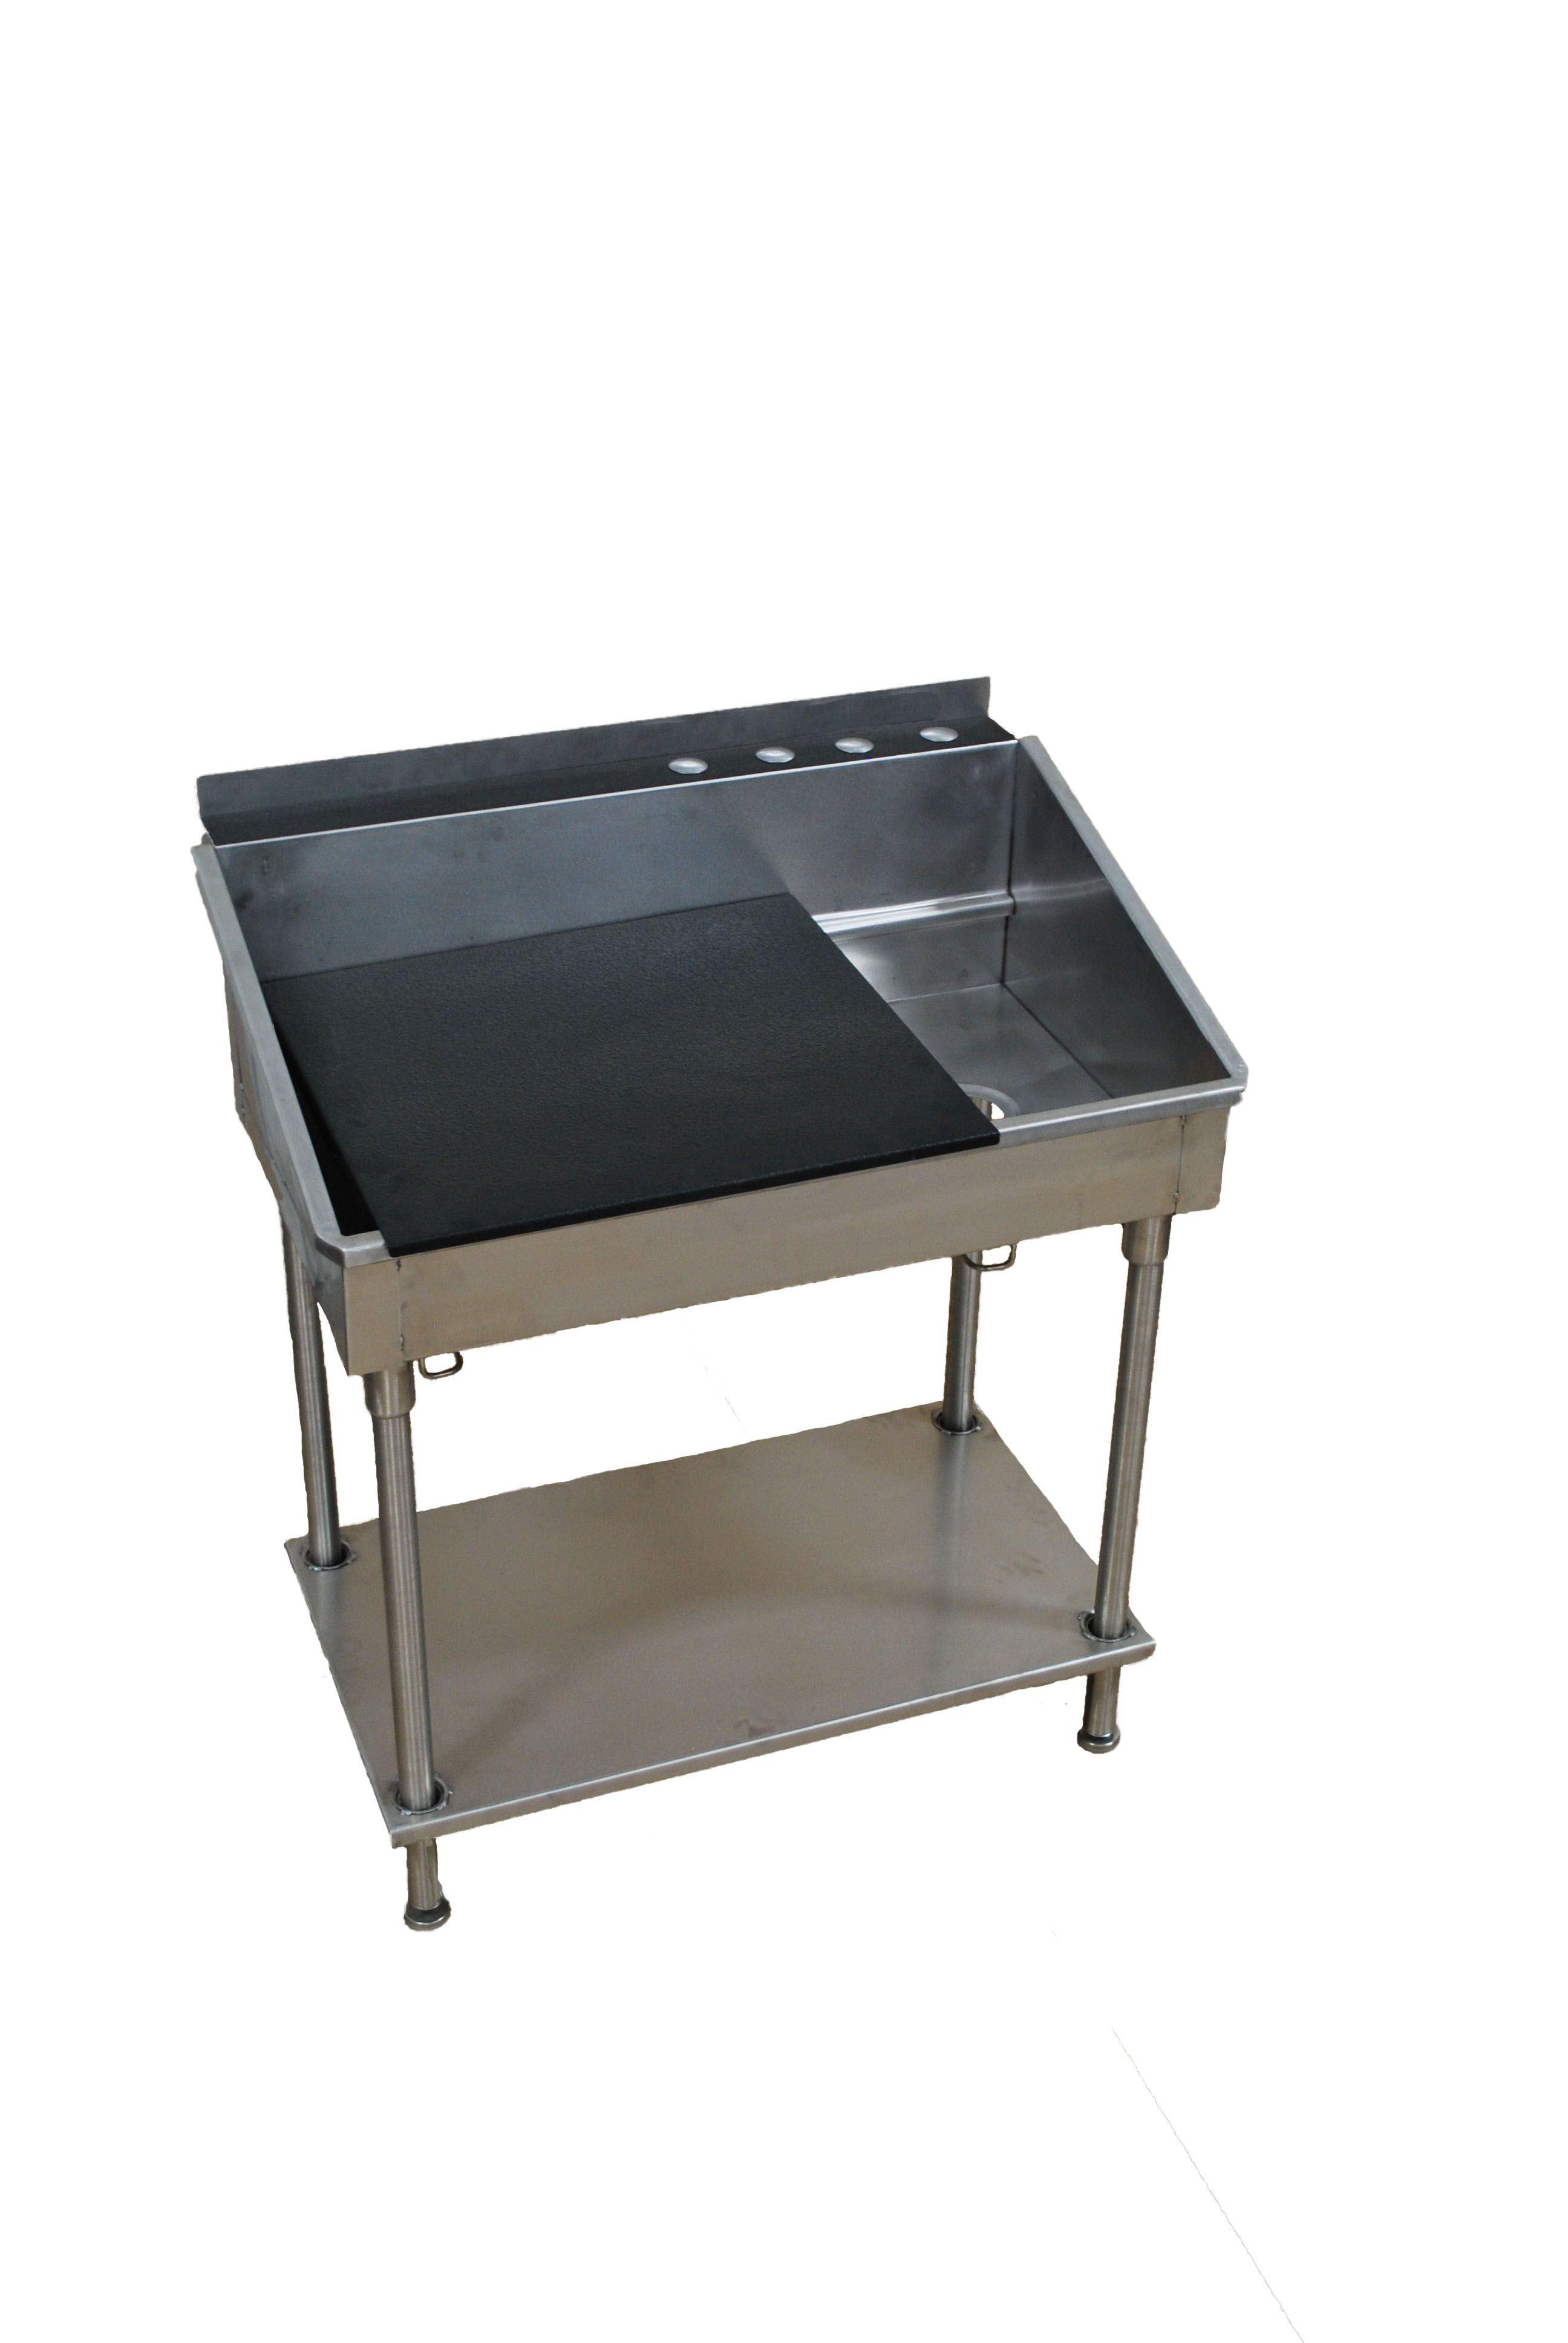 Best Utility Sink With Removable Counter Top/ Laundry Sink/ Kitchen Sink/ Utility  Sink